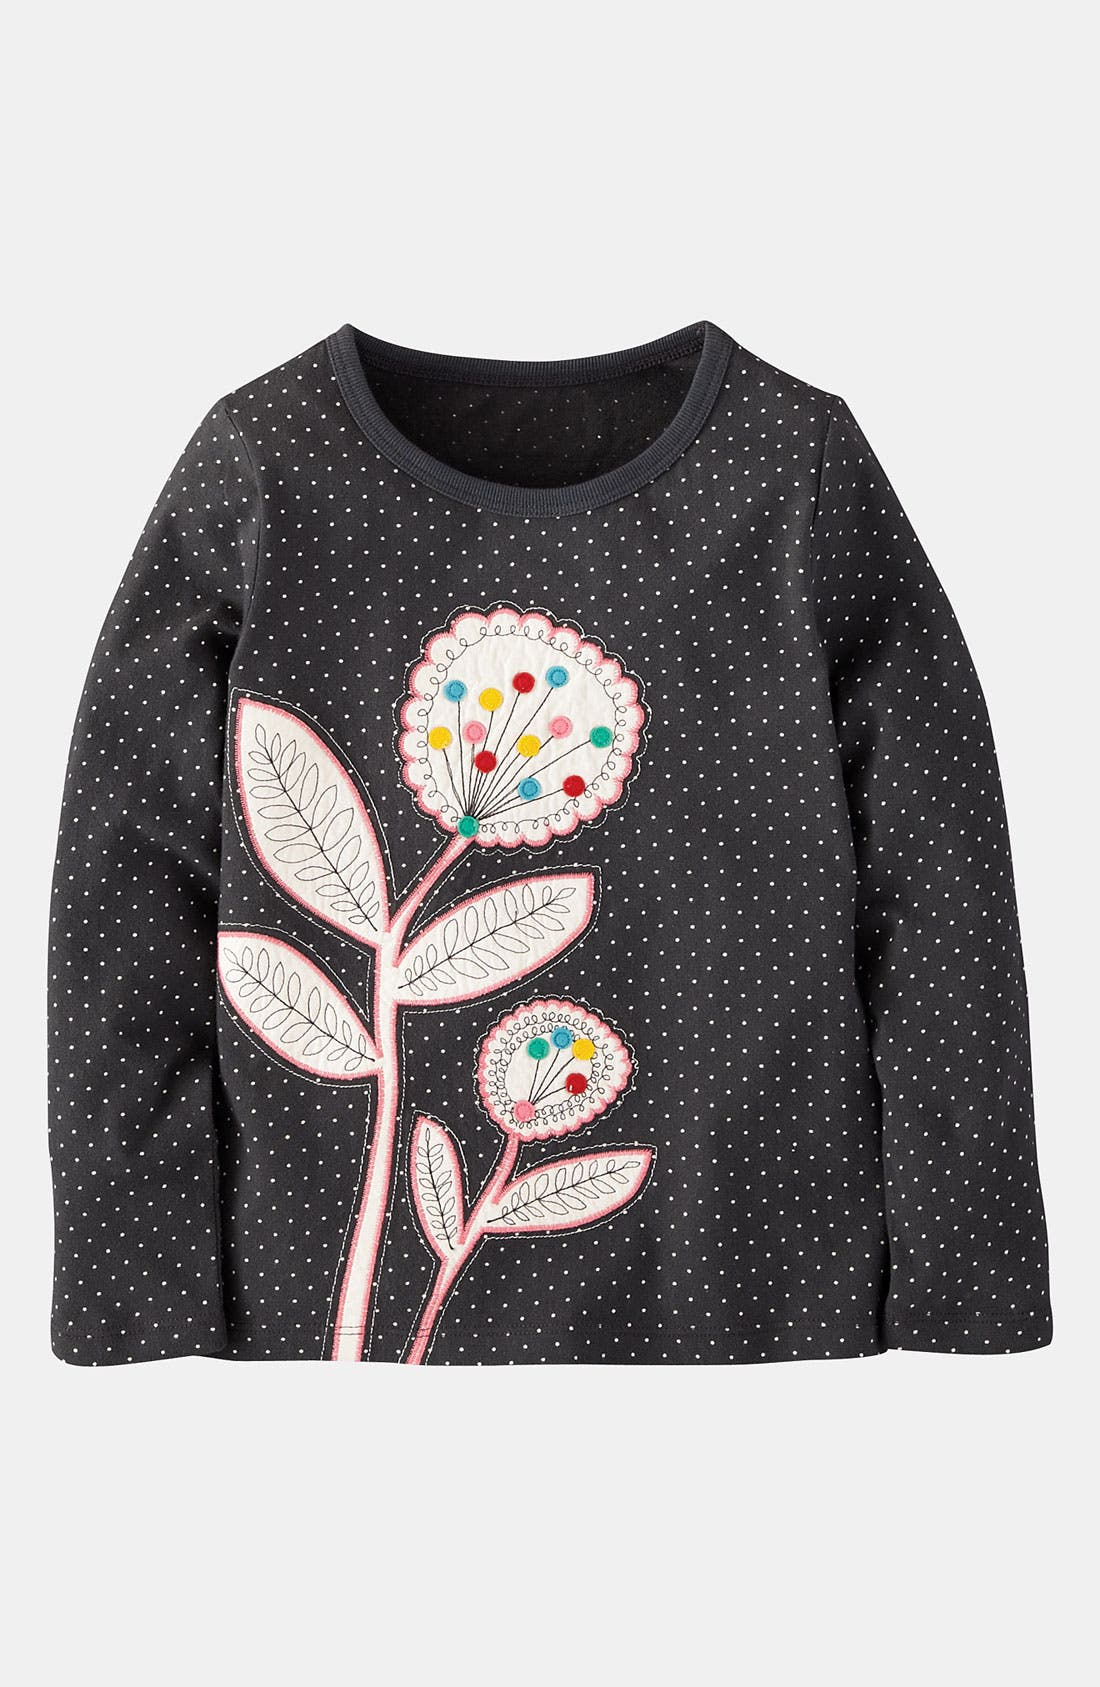 Alternate Image 1 Selected - Mini Boden 'Nordic Appliqué' Tee (Toddler, Little Girls & Big Girls)